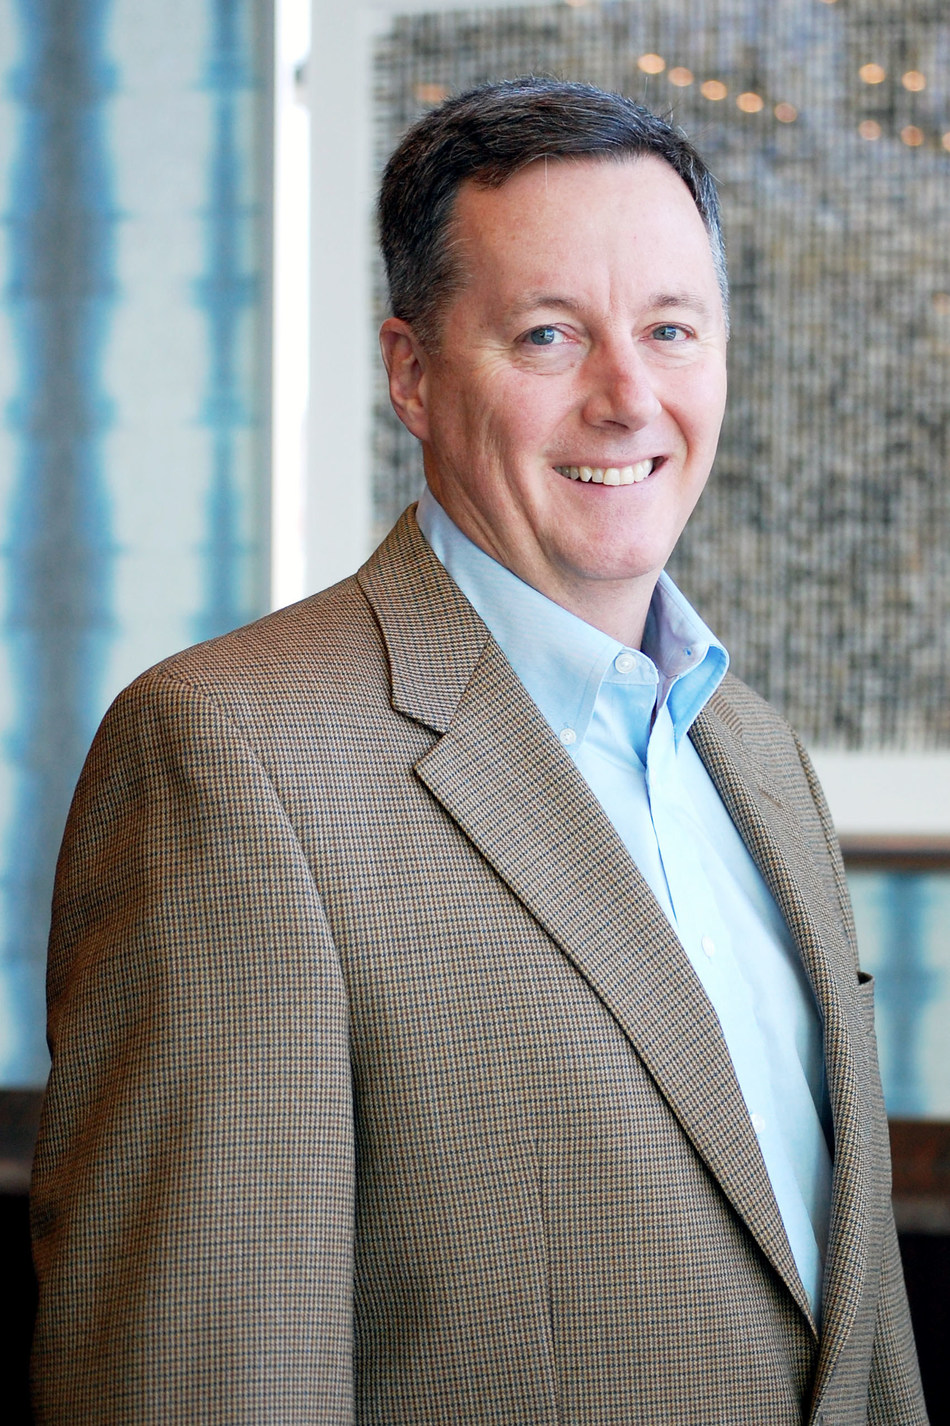 Michael Sims, Chief Financial Officer